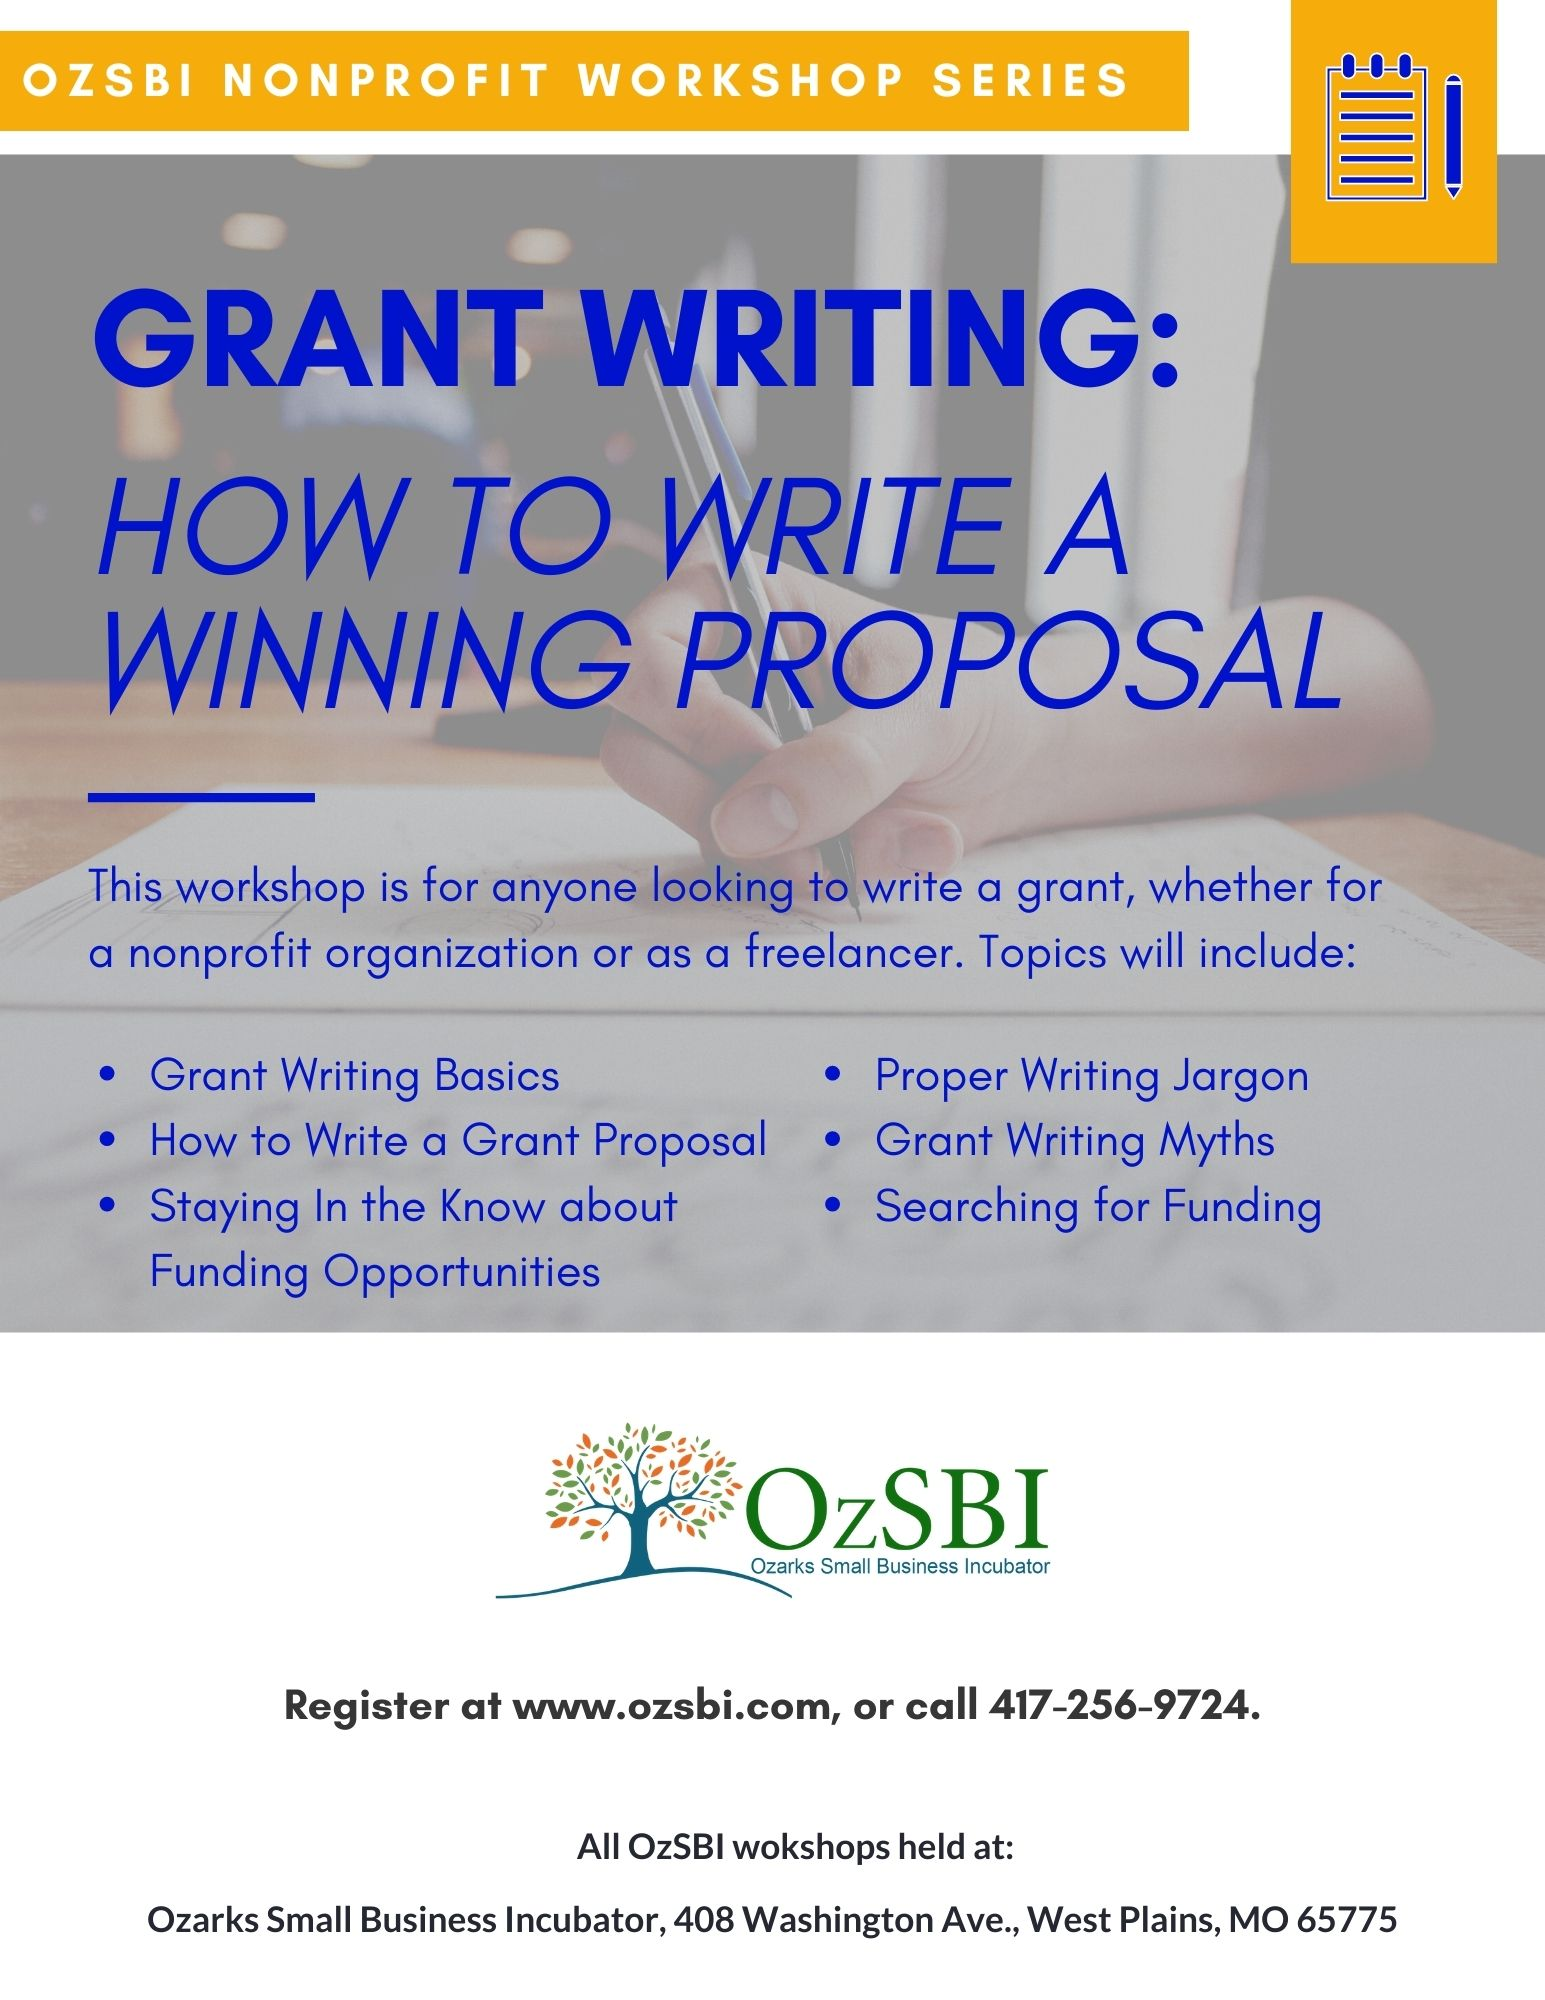 Grant Writing: How to Write a Winning Proposal @ OzSBI